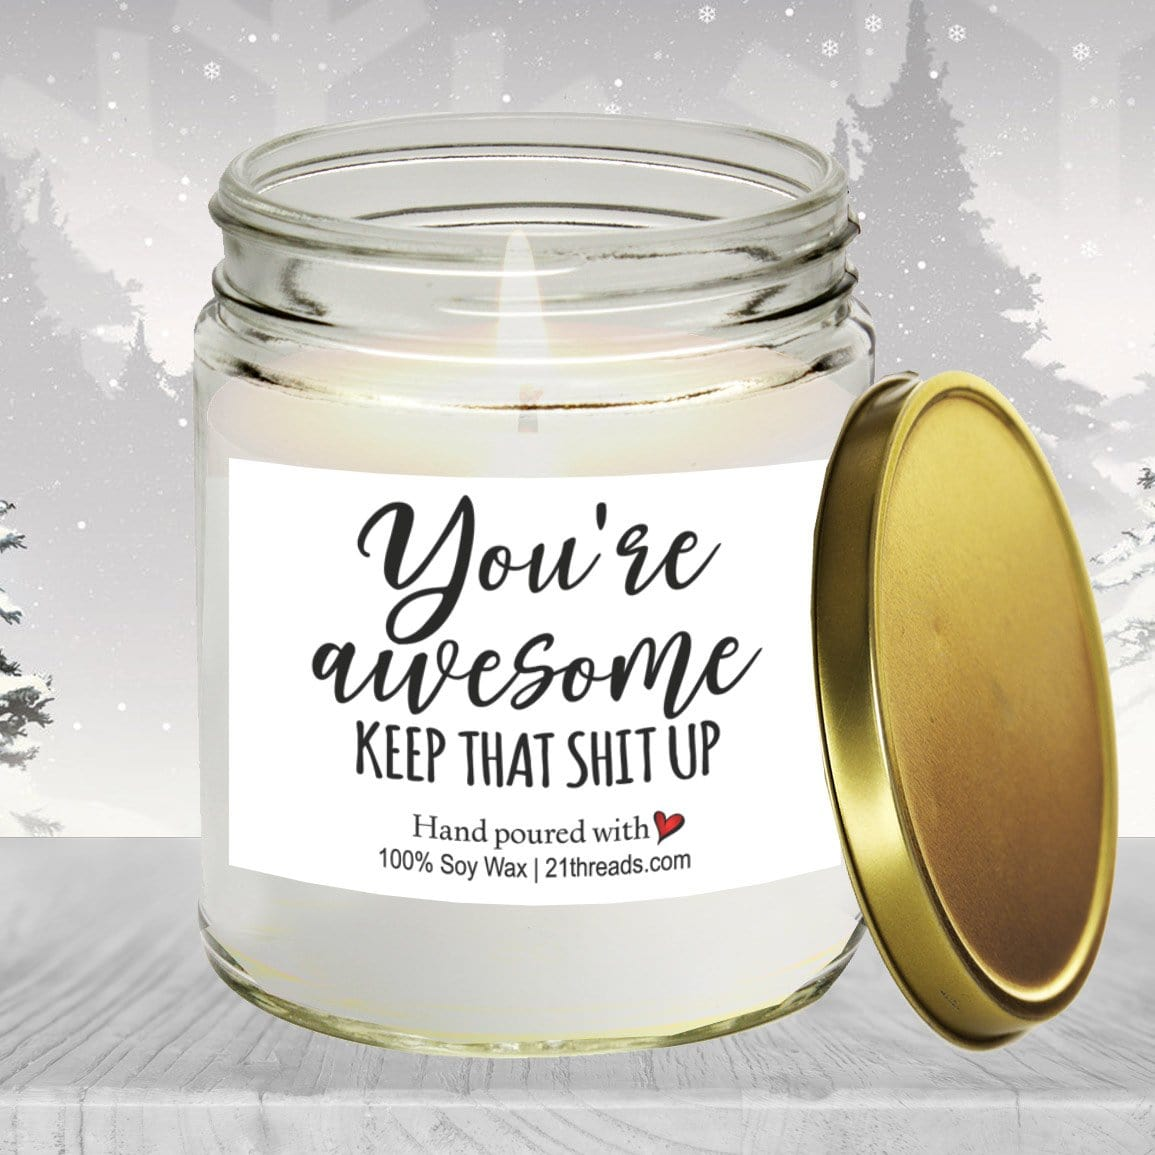 You're Awesome 8oz Premium 100% Soy Candle